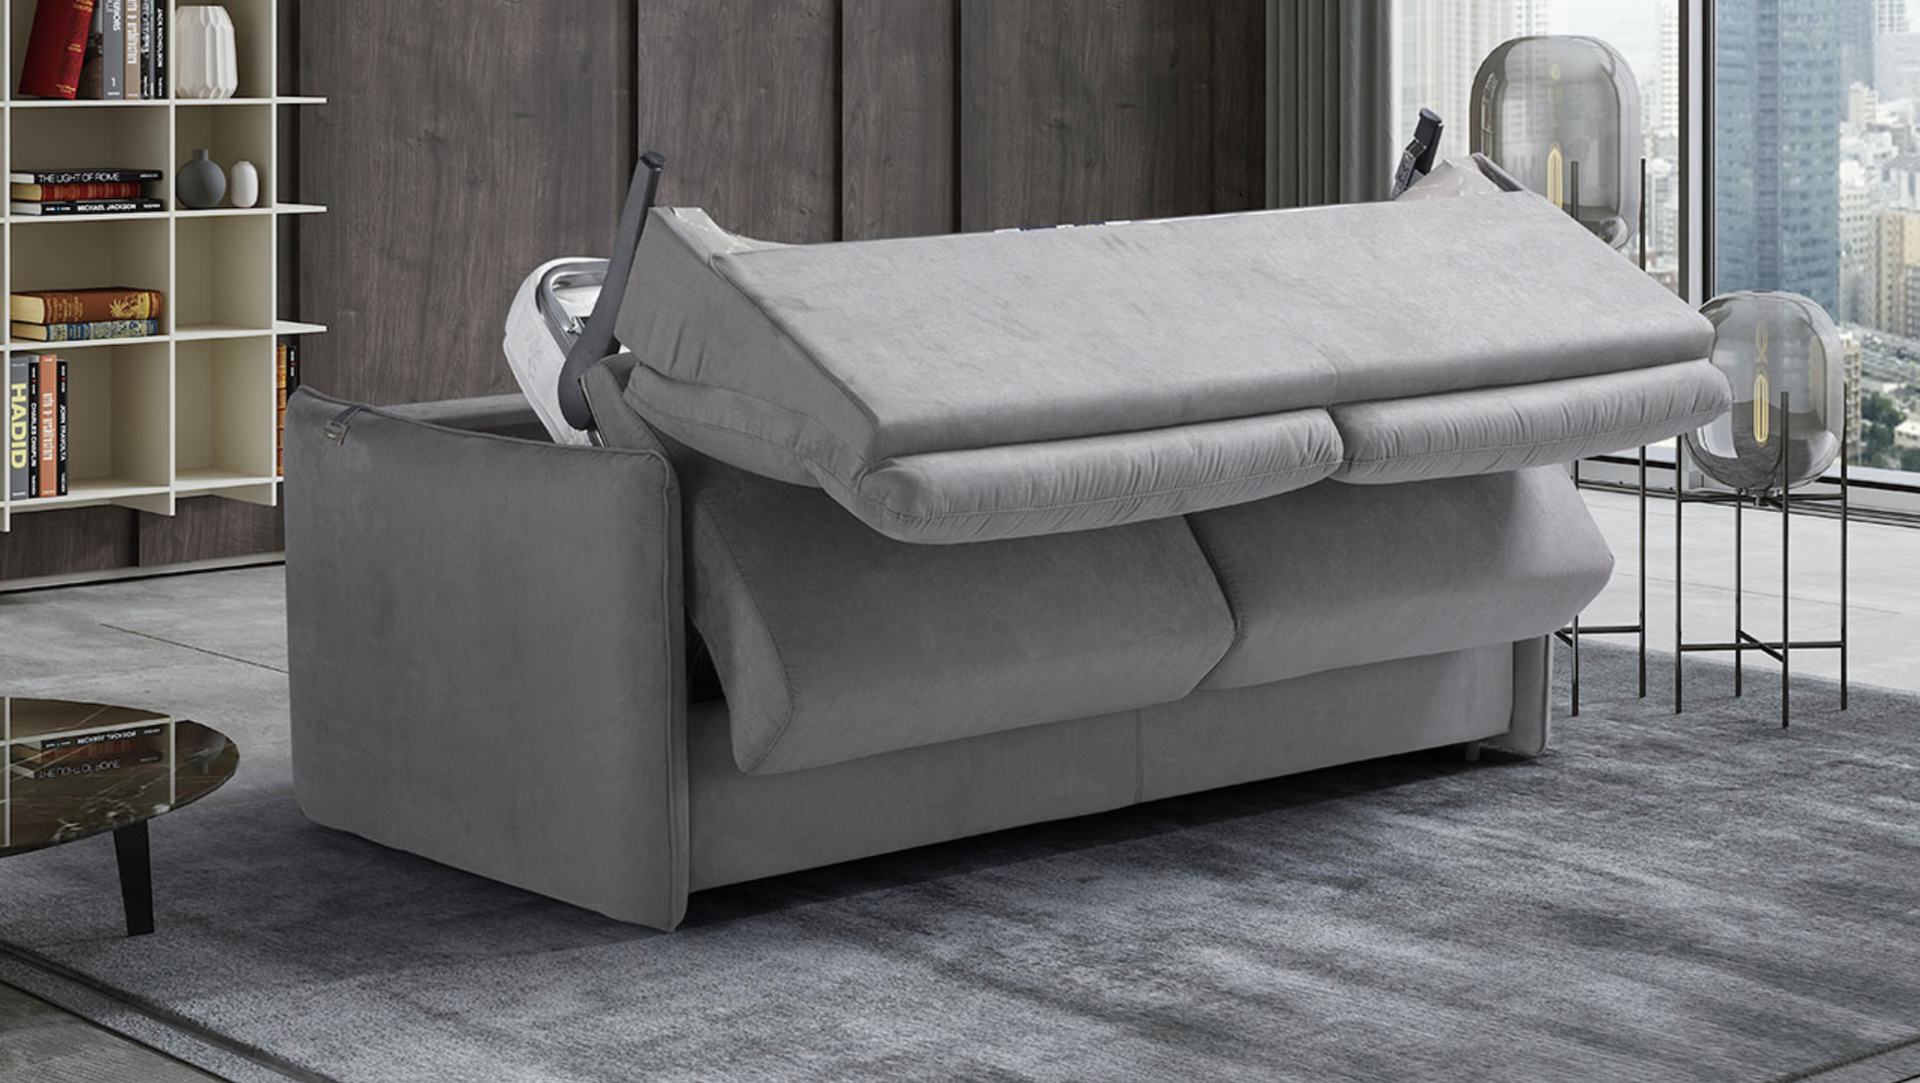 'AIMEE' Italian Crafted 3 Seat Sofa Bed in PLAZA GREY. RRP £1979 - Image 2 of 5